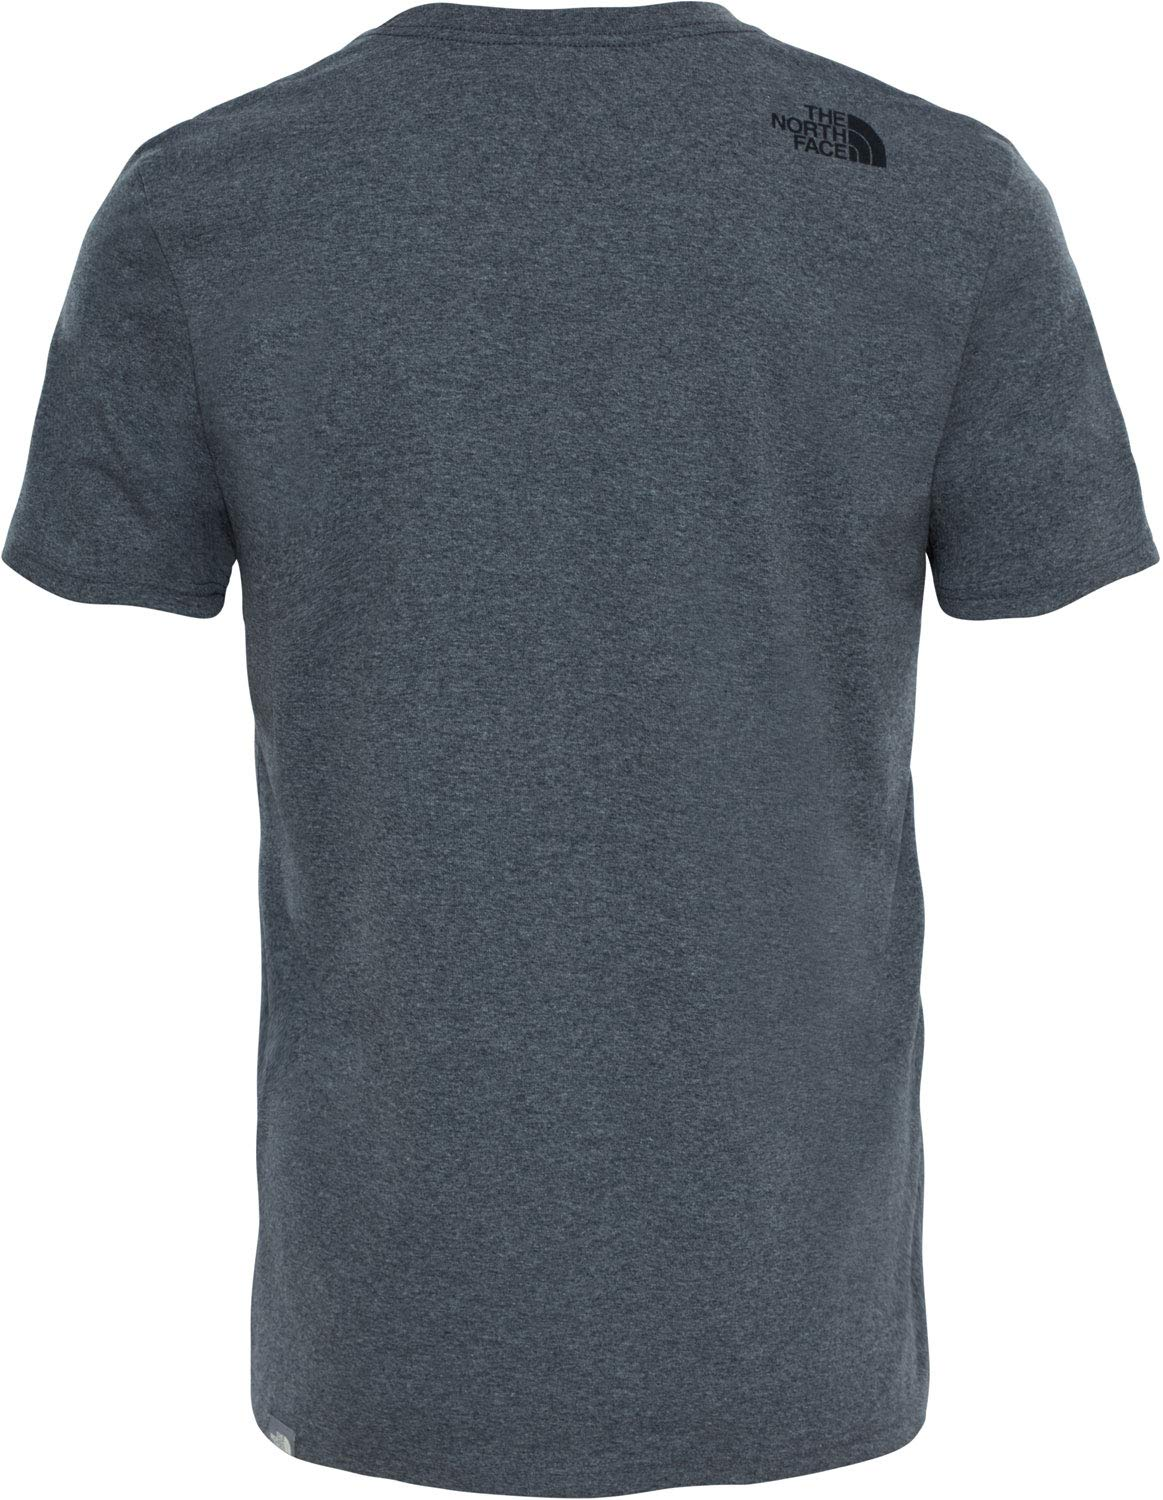 The North Face Mountain Line Men's Outdoor T-Shirt 3